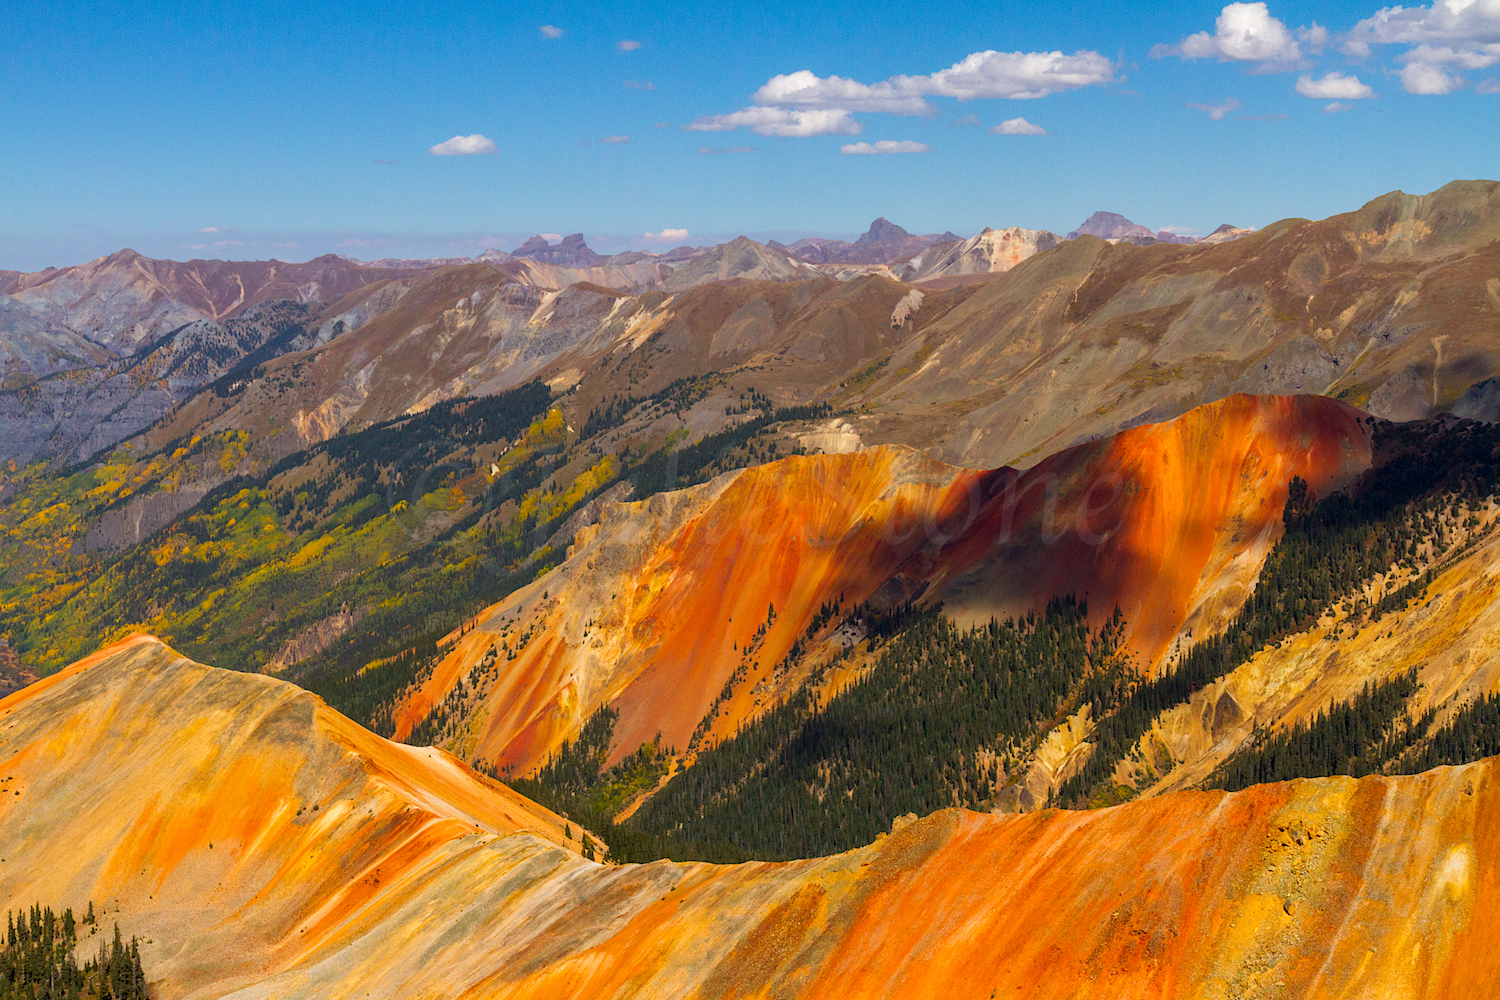 Red Mountain #3, Image # 6251